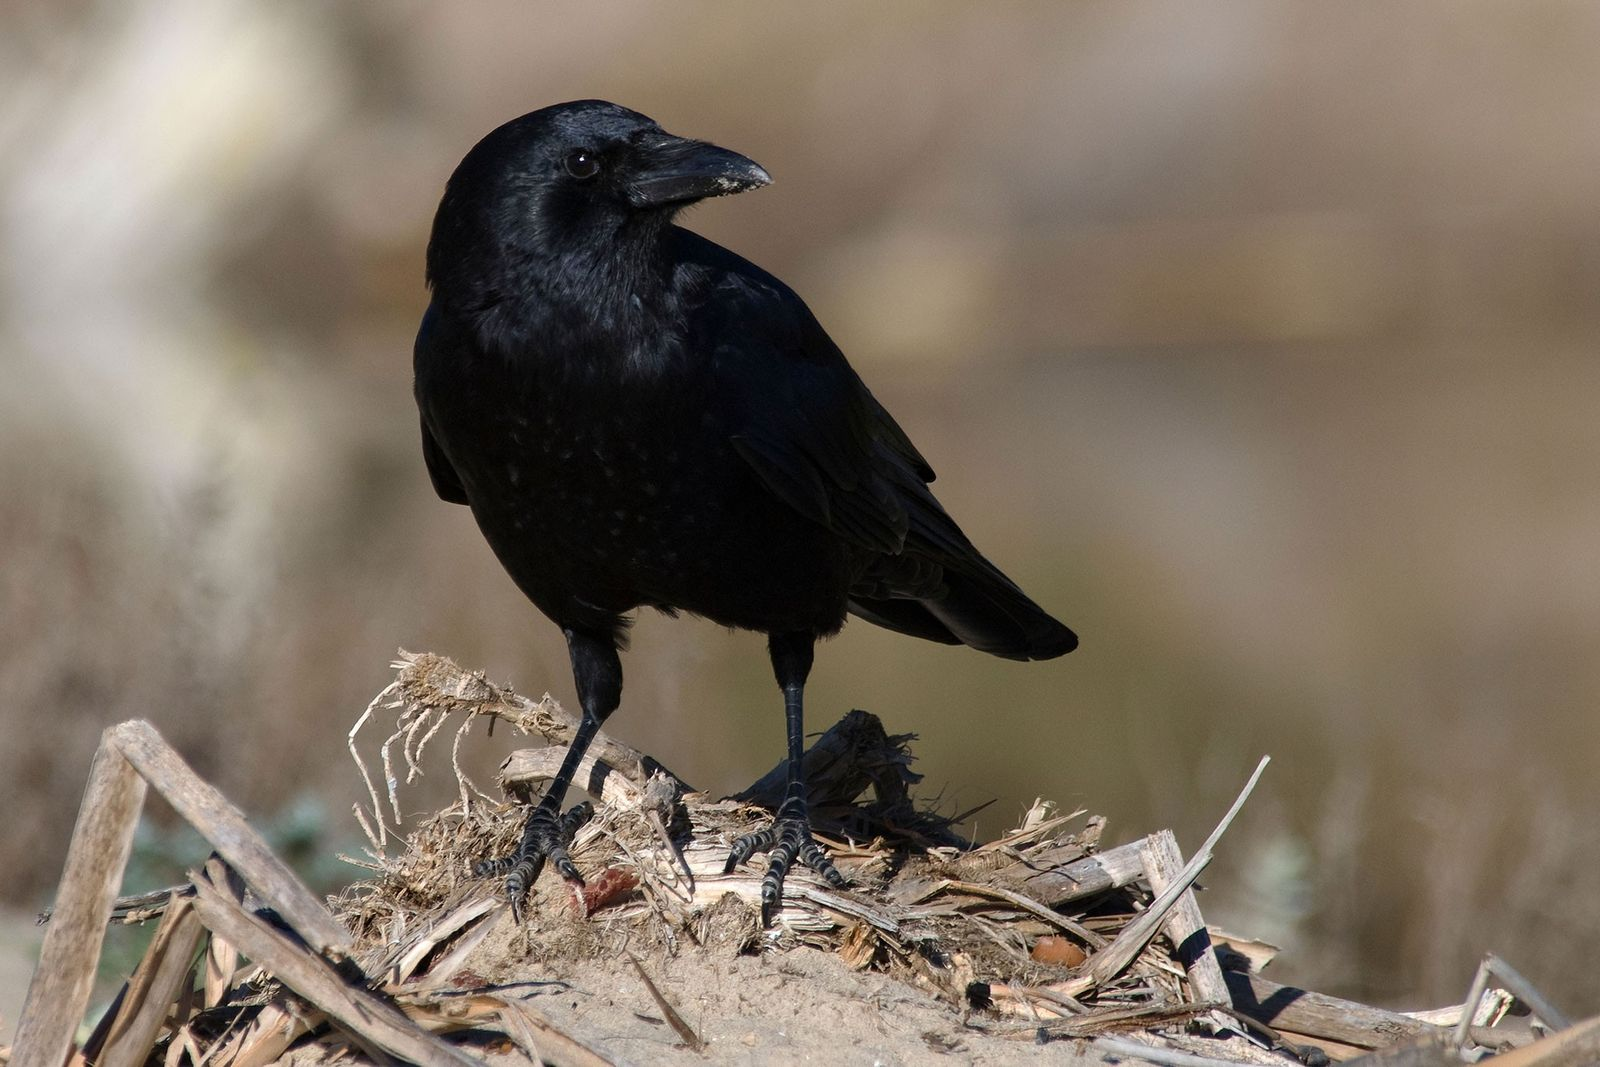 The American crow (Corvus brachyrhynchos) has become a common sight in urban and suburban areas across ...